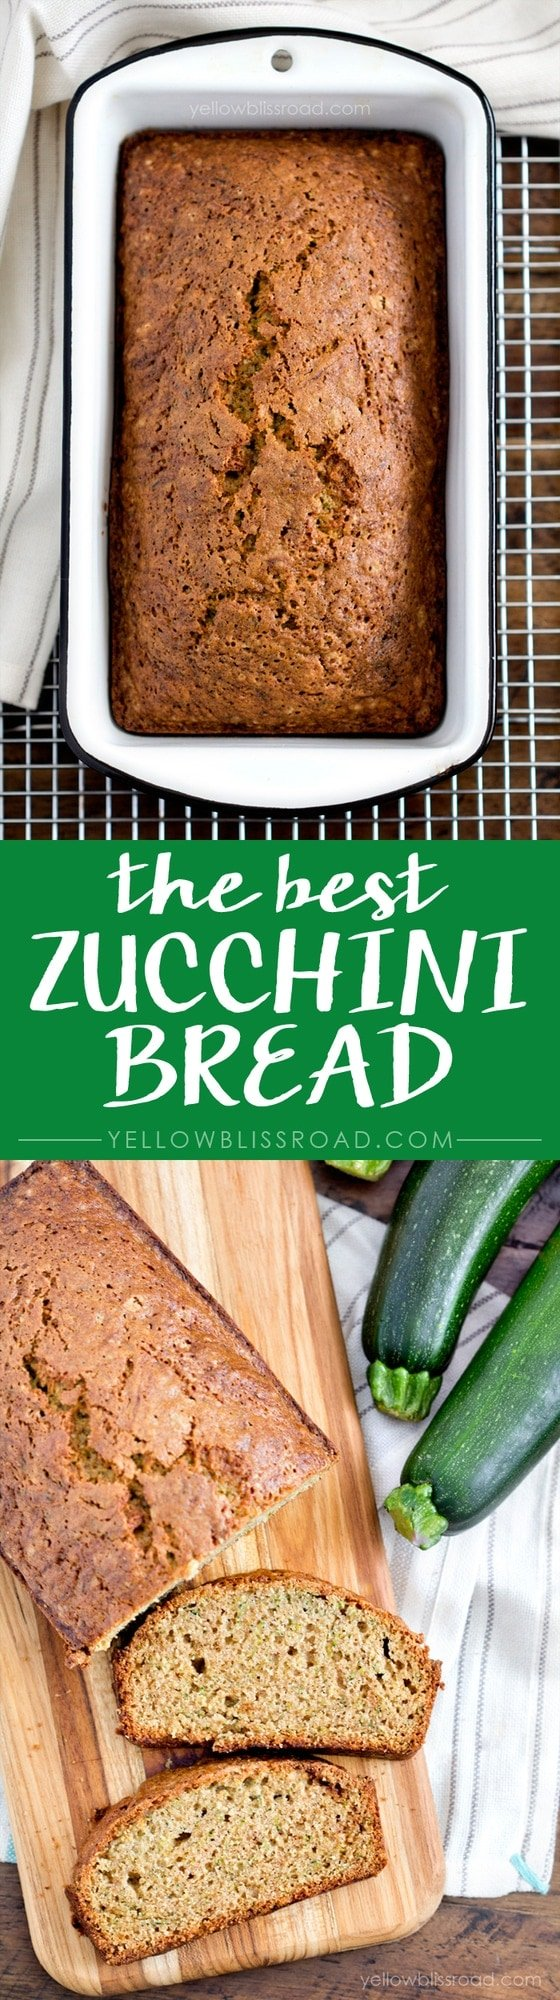 Zucchini Bread recipe collage